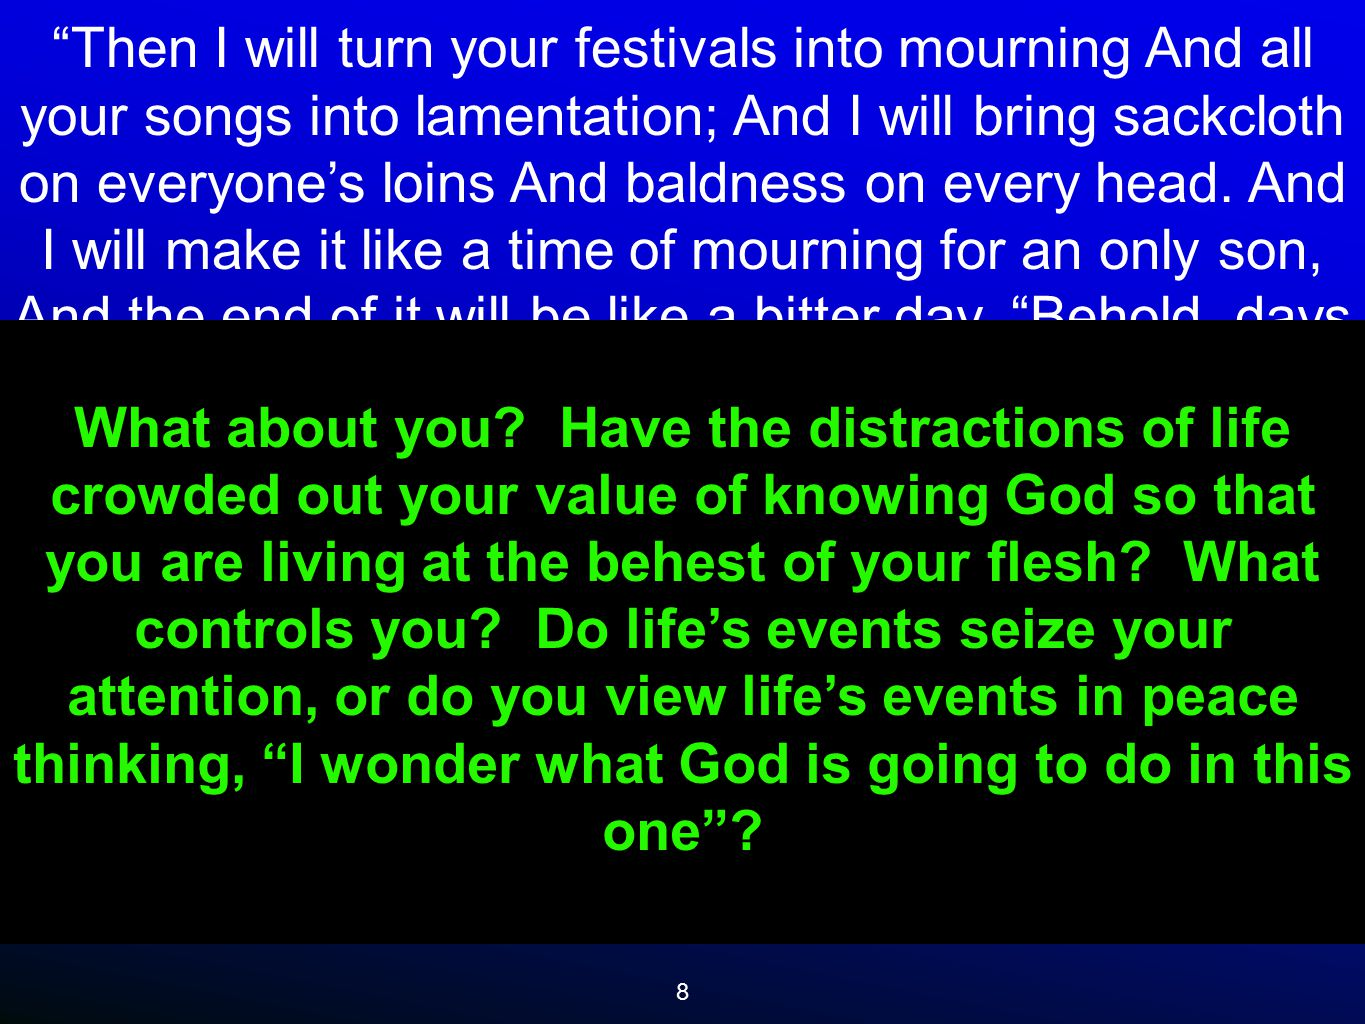 8 Then I will turn your festivals into mourning And all your songs into lamentation; And I will bring sackcloth on everyone's loins And baldness on every head.